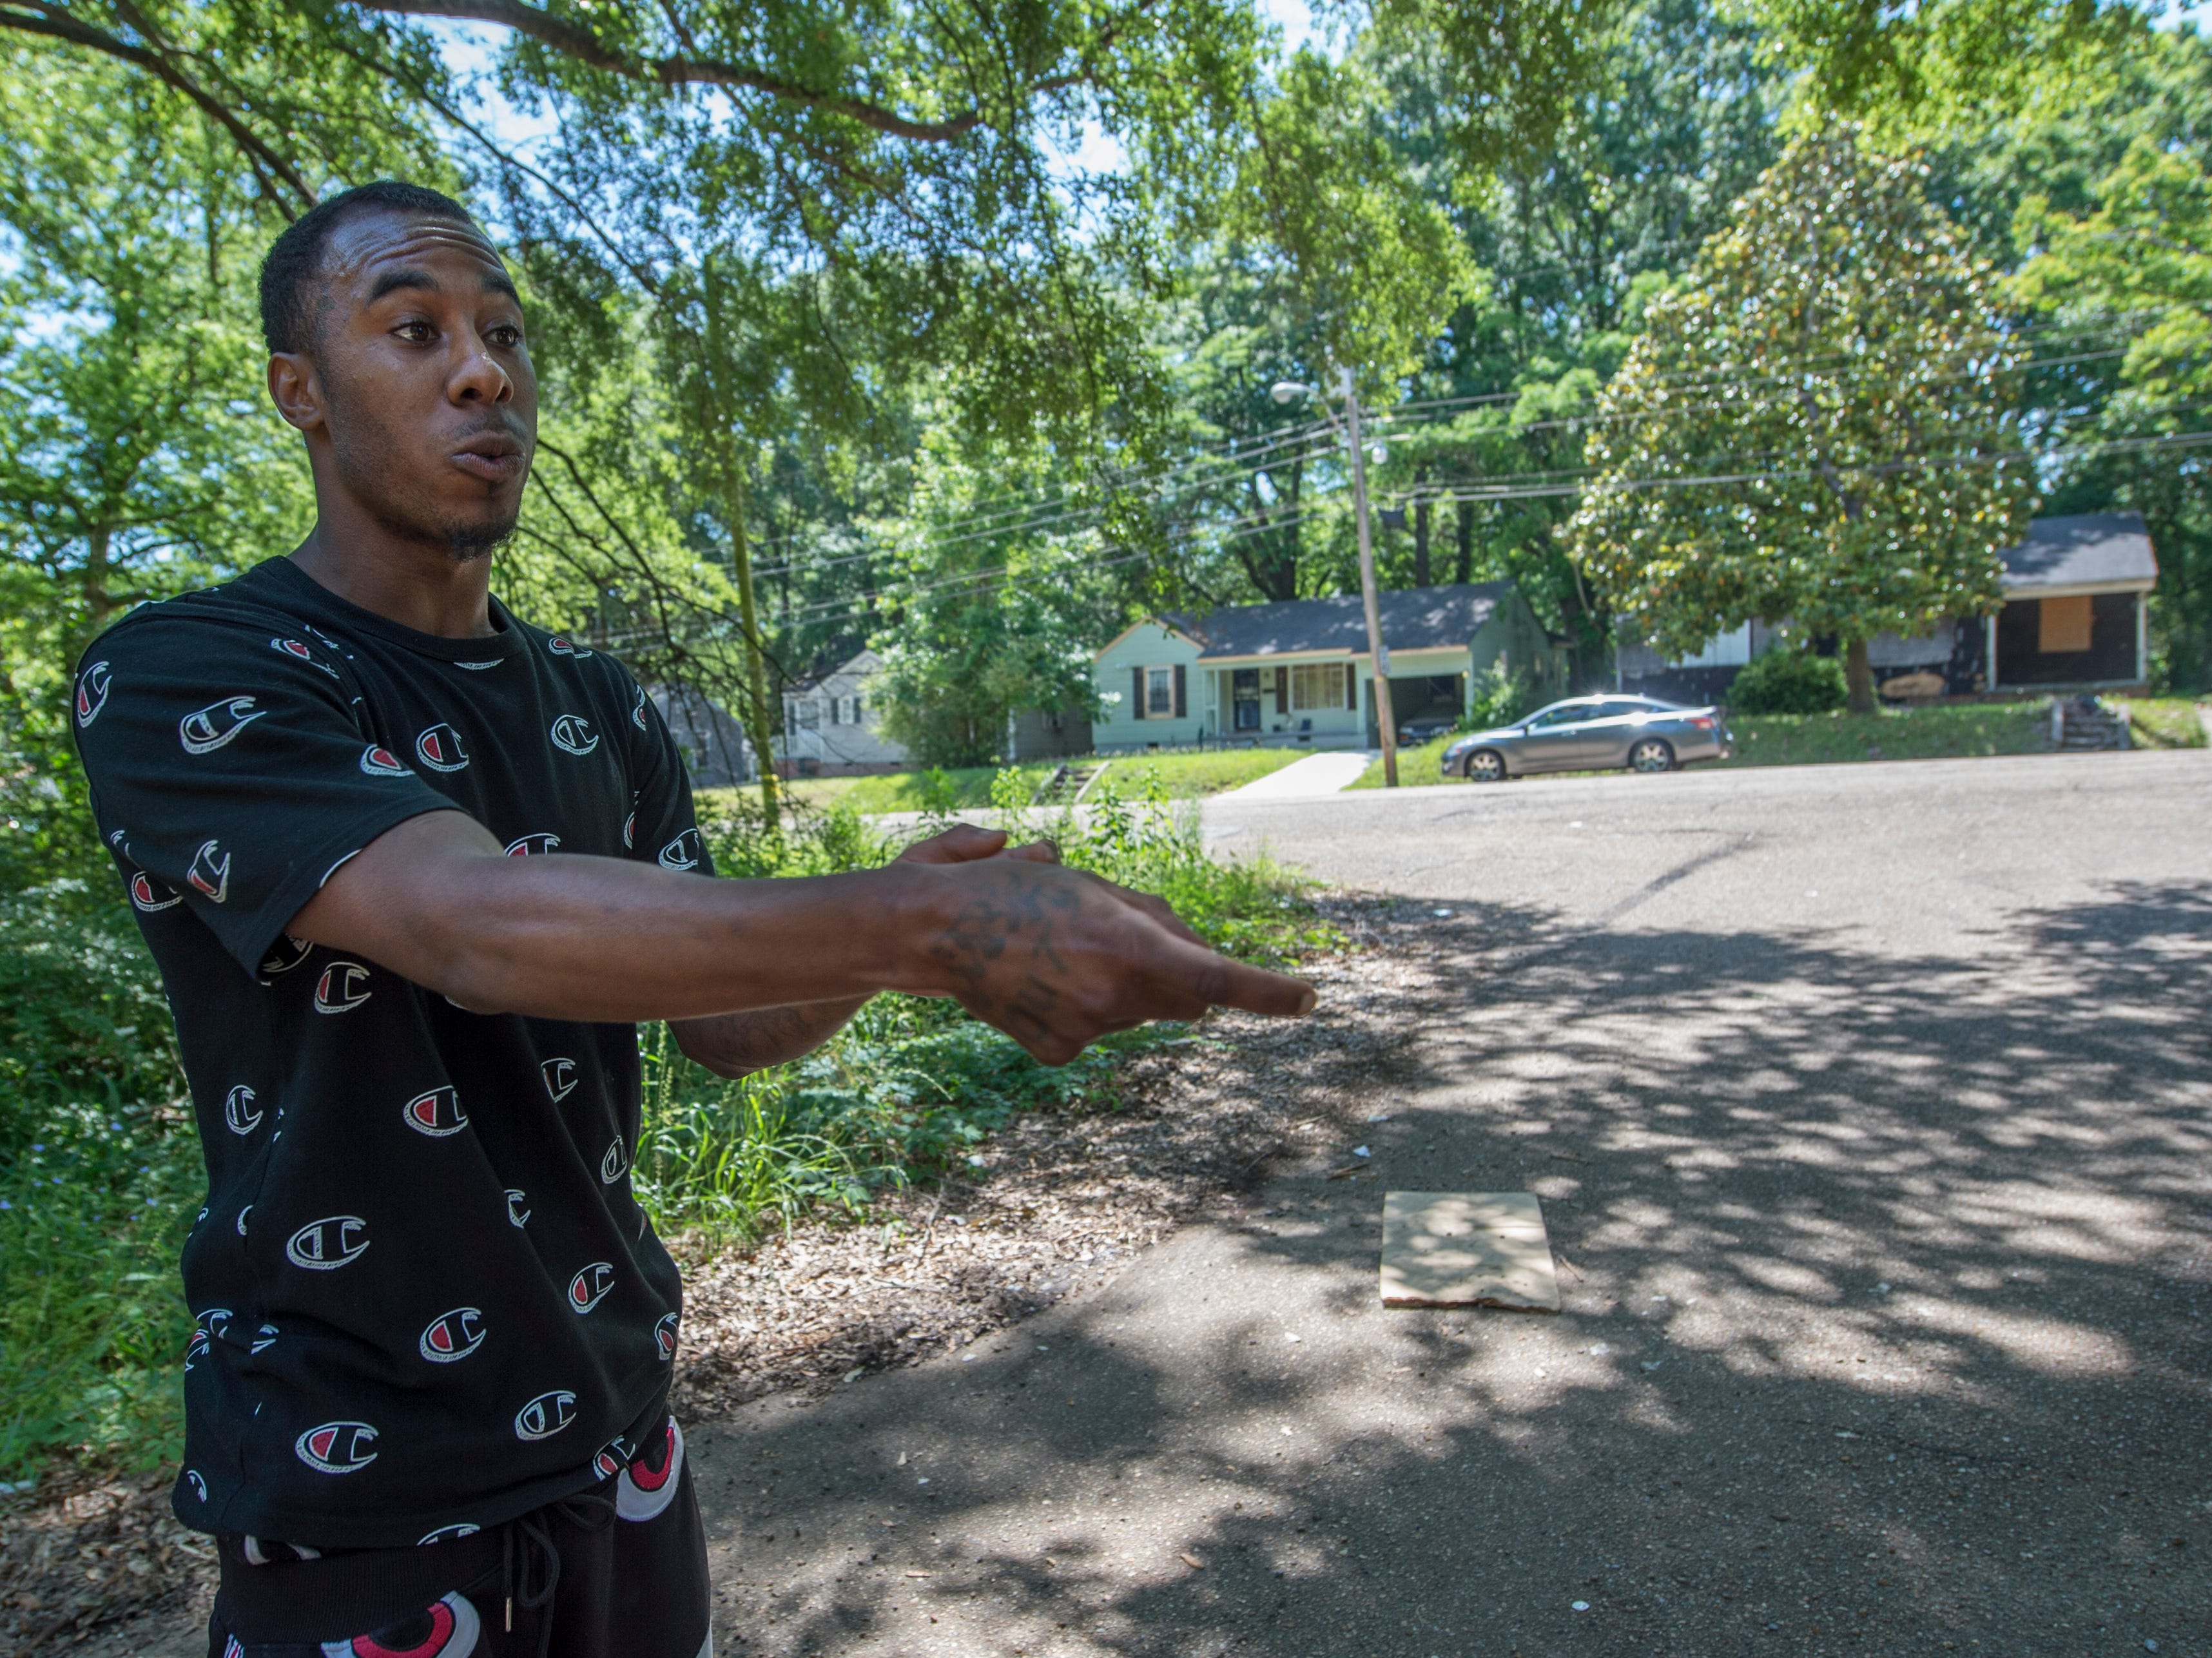 Johnathan Williams of Jackson, standing just feet from where he witnessed a woman being shot to death on Willing Avenue Sunday afternoon, describes what he saw. Maurice Clincy, 35, is charged with murder in the death of his 37-year-old girlfriend Nicole Newsome following a domestic dispute as the couple walked on Willing Avenue near the intersection of Ellis Avenue. Monday, April 6, 2019